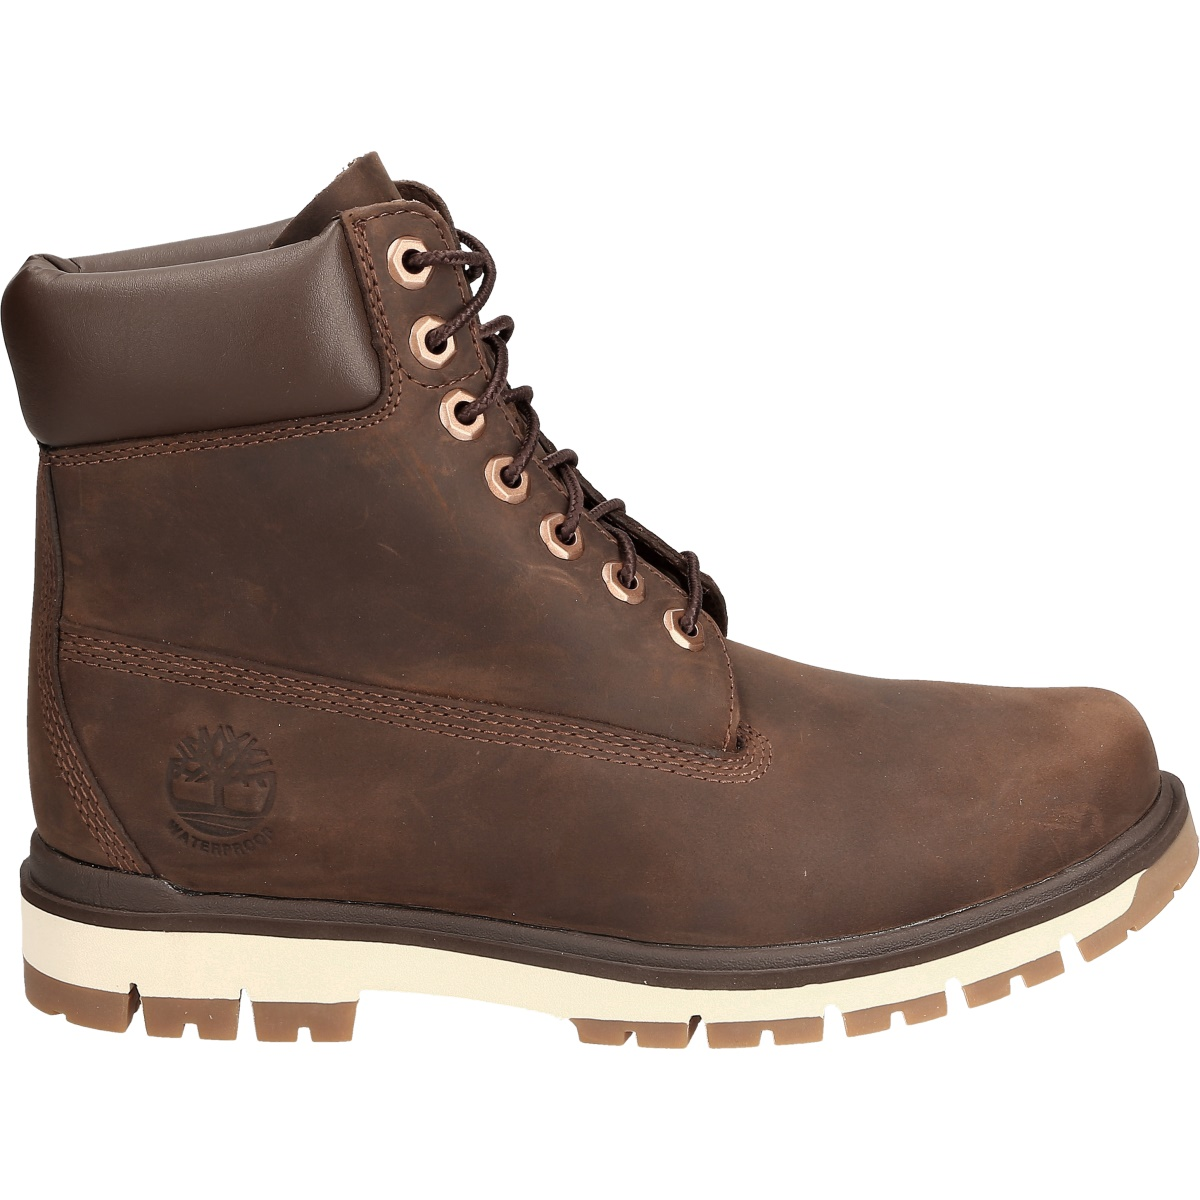 Timberland #A1UOA Men's shoes Ankle Boots buy shoes at our